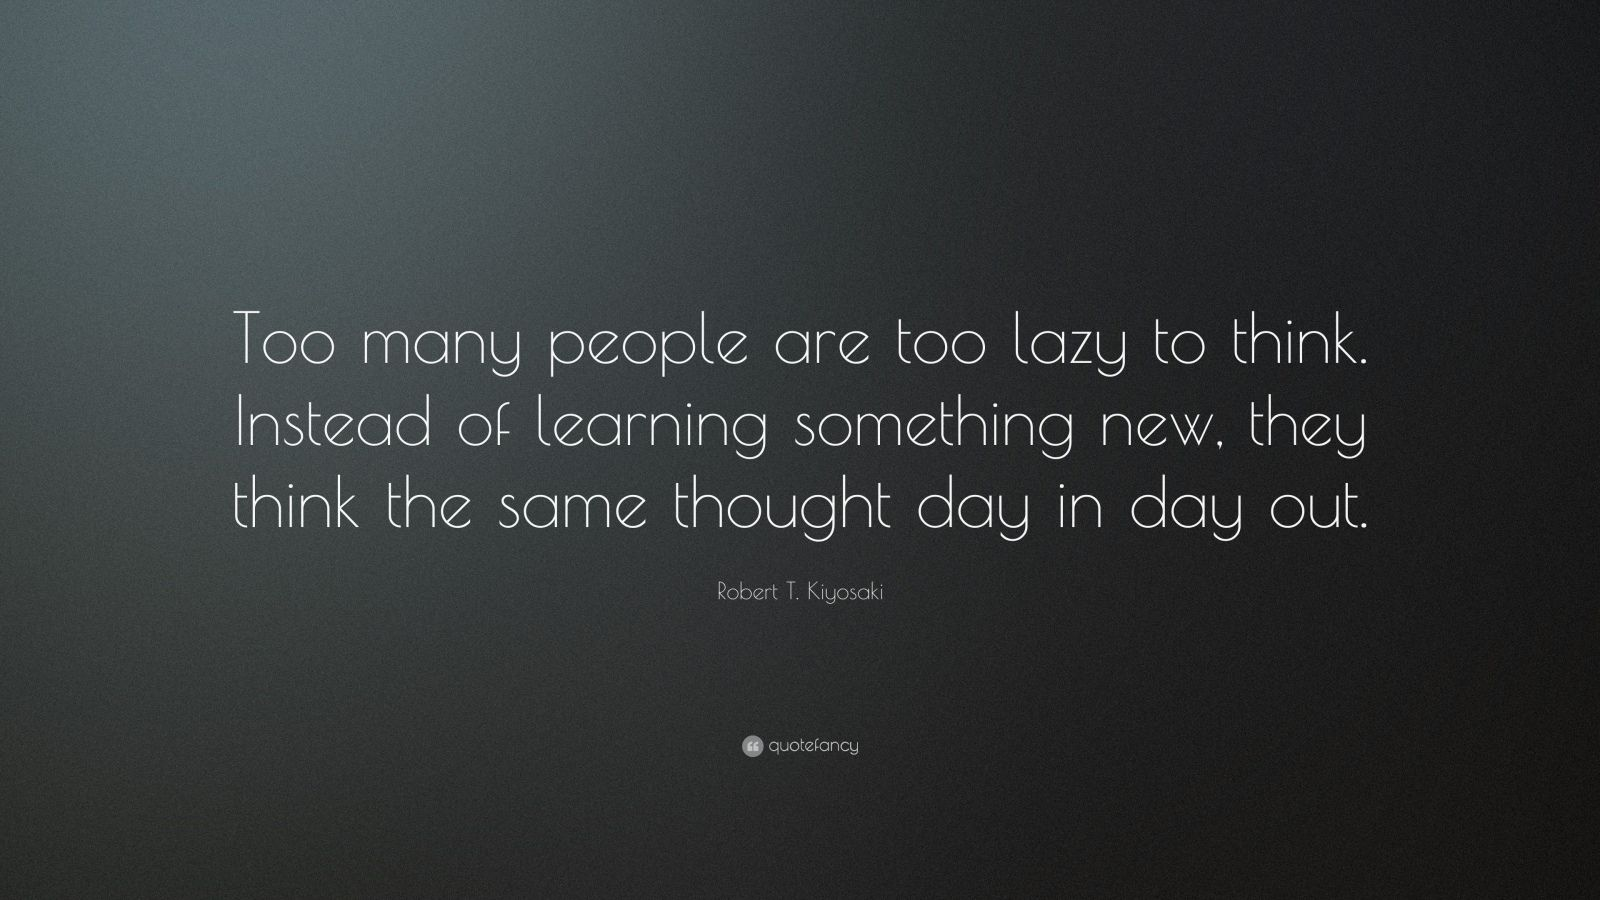 """Robert T. Kiyosaki Quote: """"Too many people are too lazy to think. Instead of learning something new, they think the same thought day in day out."""""""